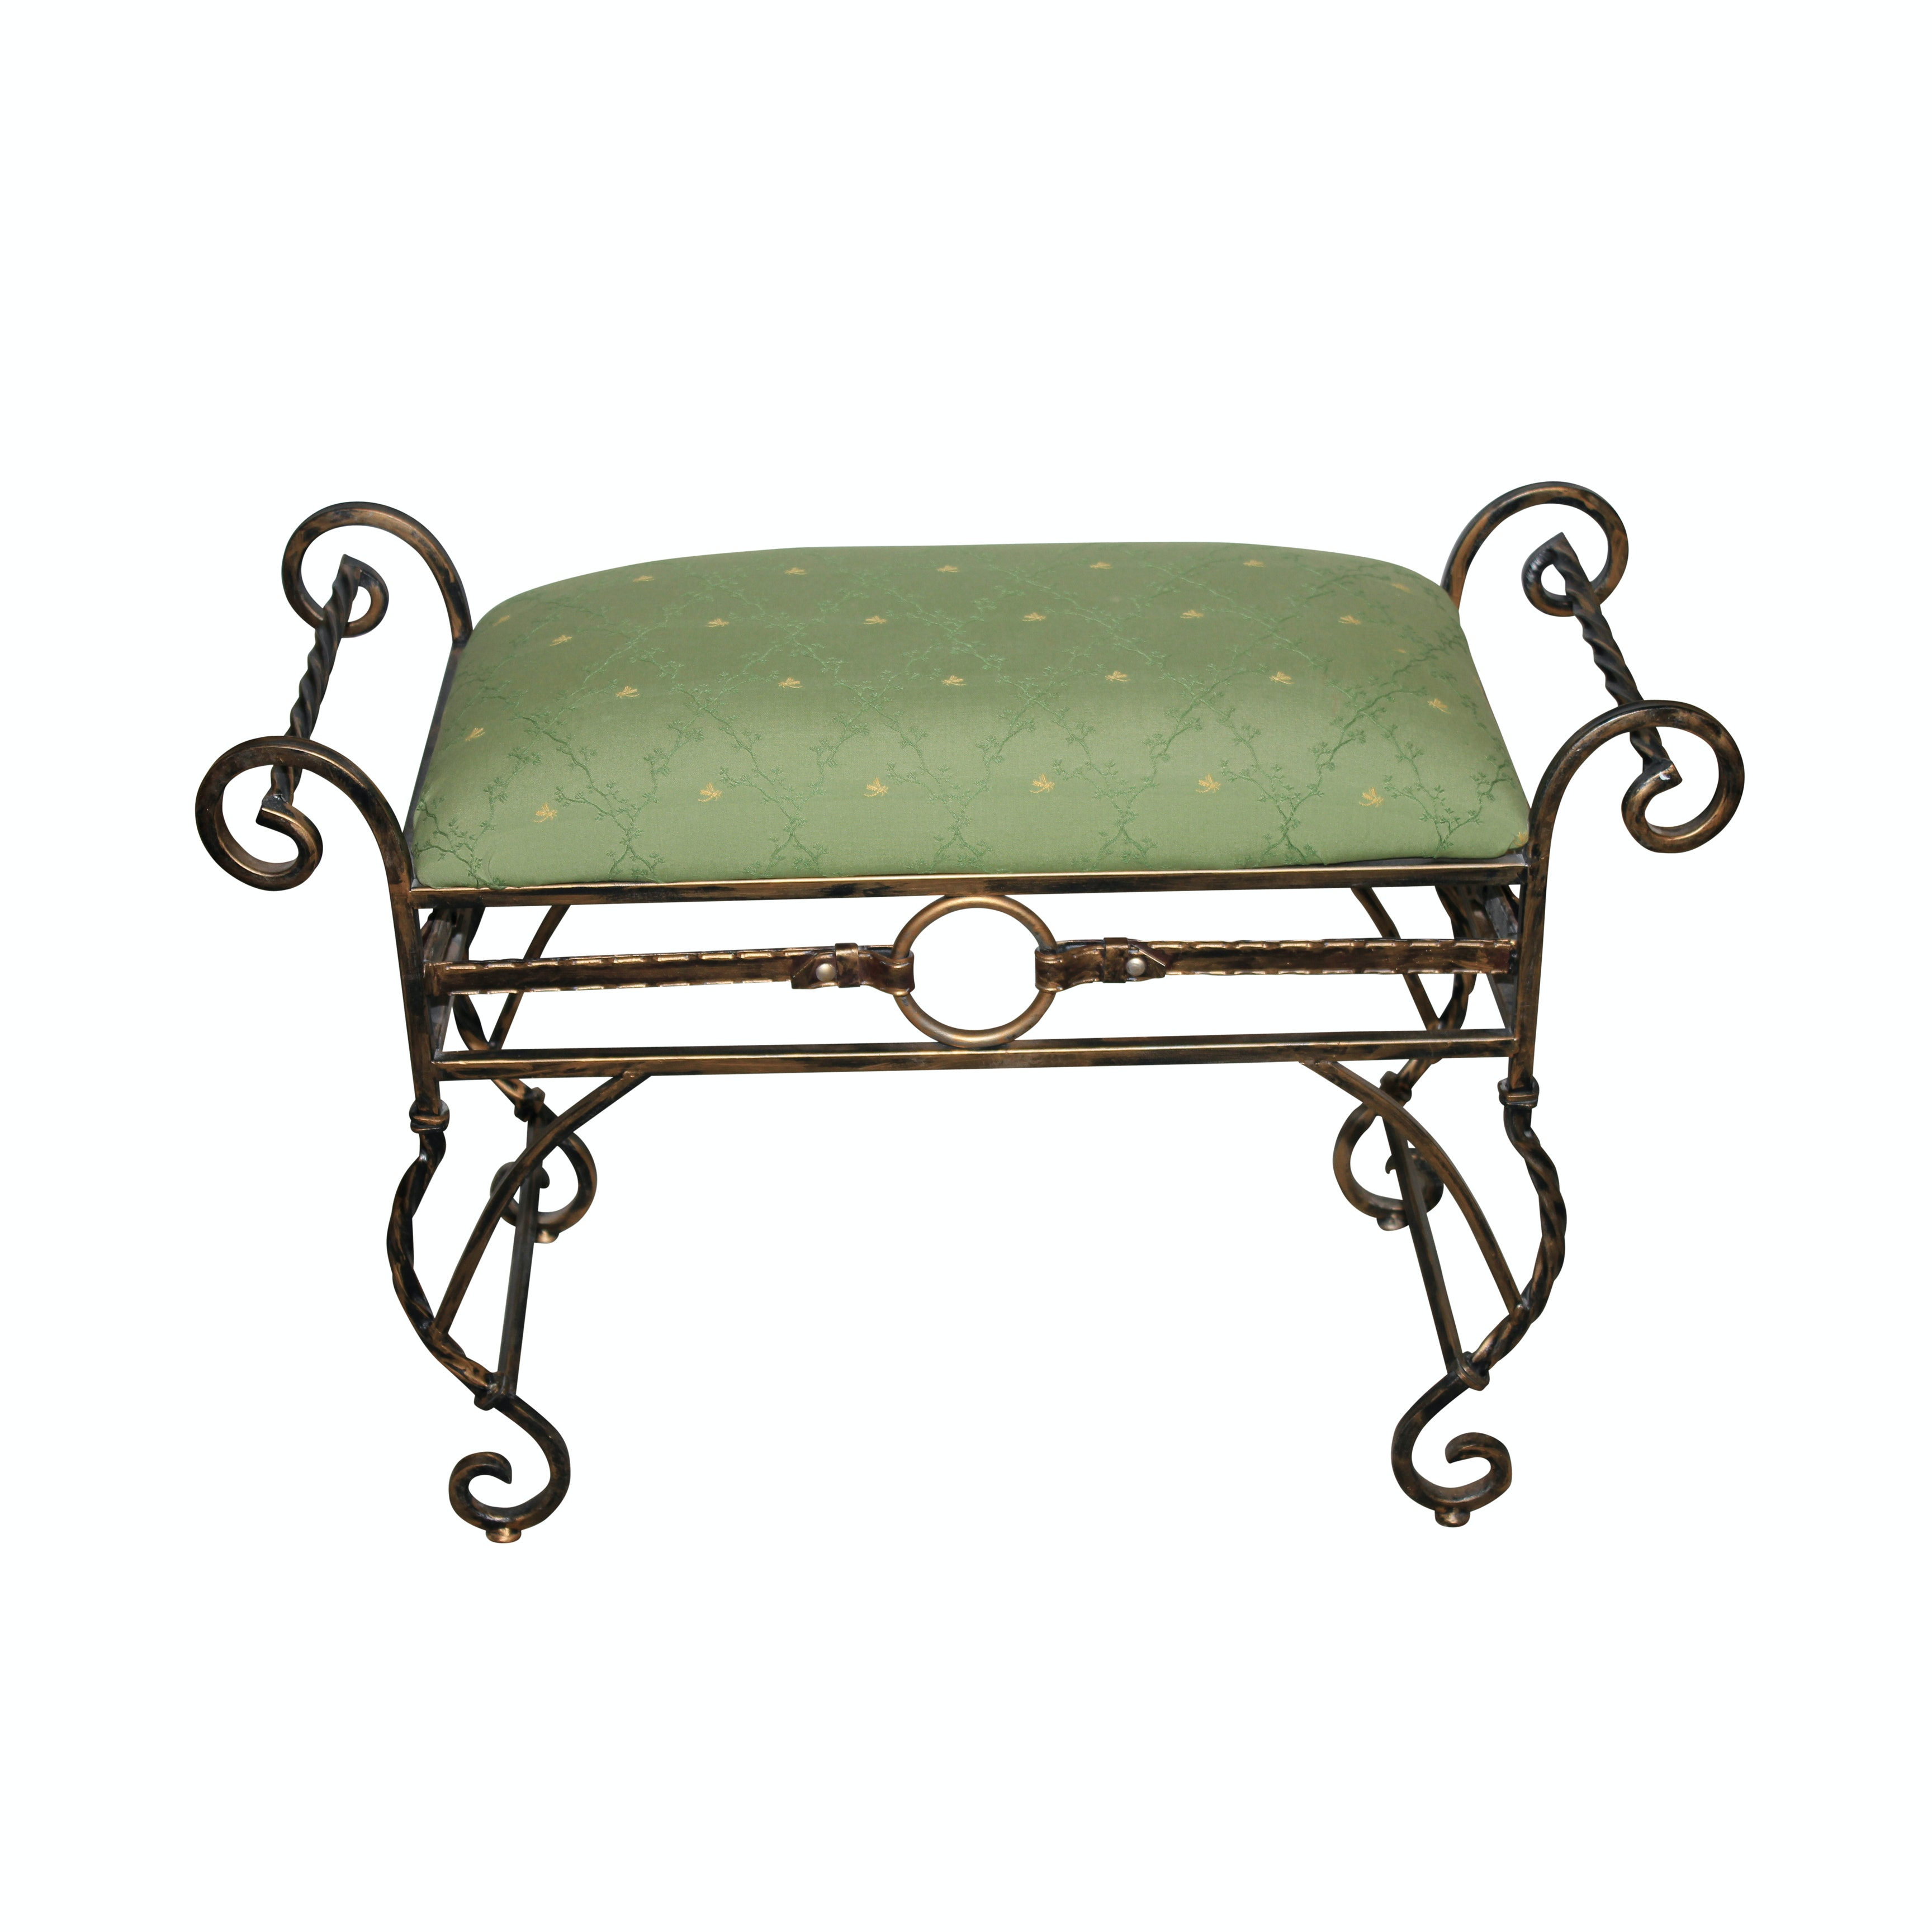 Metal Vanity Bench with Green Seat Cushion